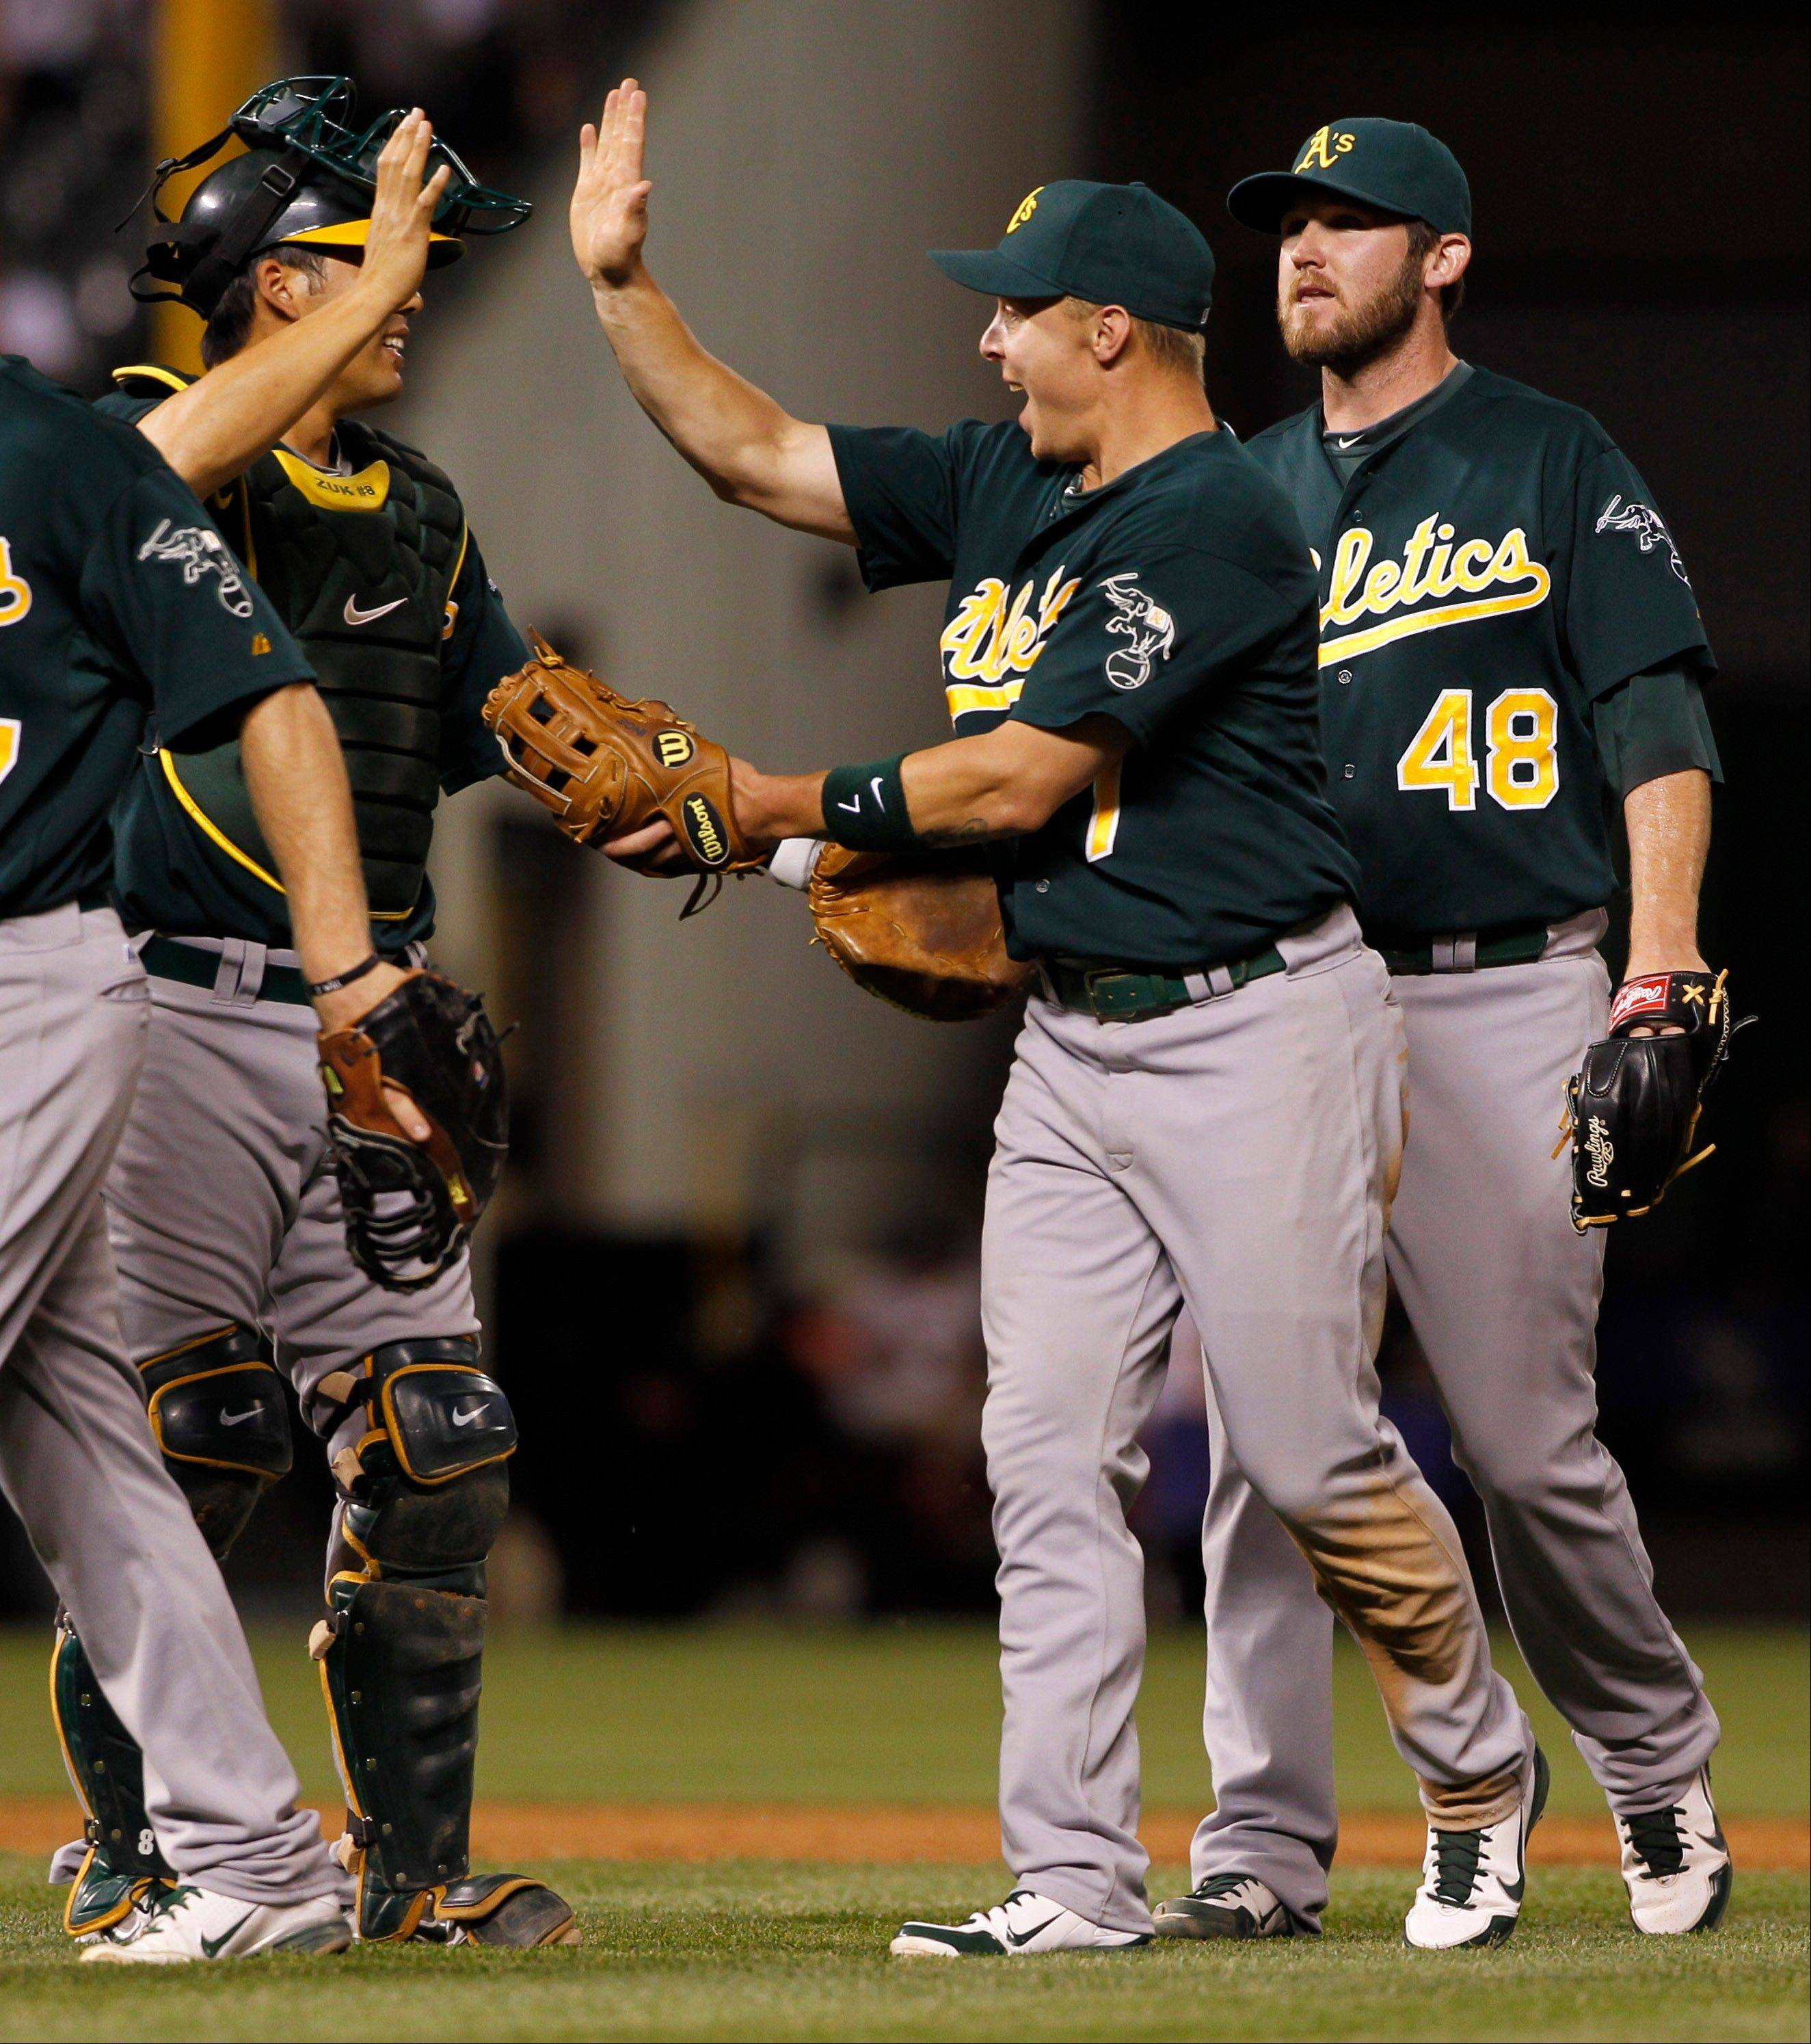 Oakland catcher Kurt Suzuki, left, celebrates with third baseman Brandon Inge, center, and relief pitcher Ryan Cook after the Athletics' 10-8 victory over the Rockies Wednesday in Denver.